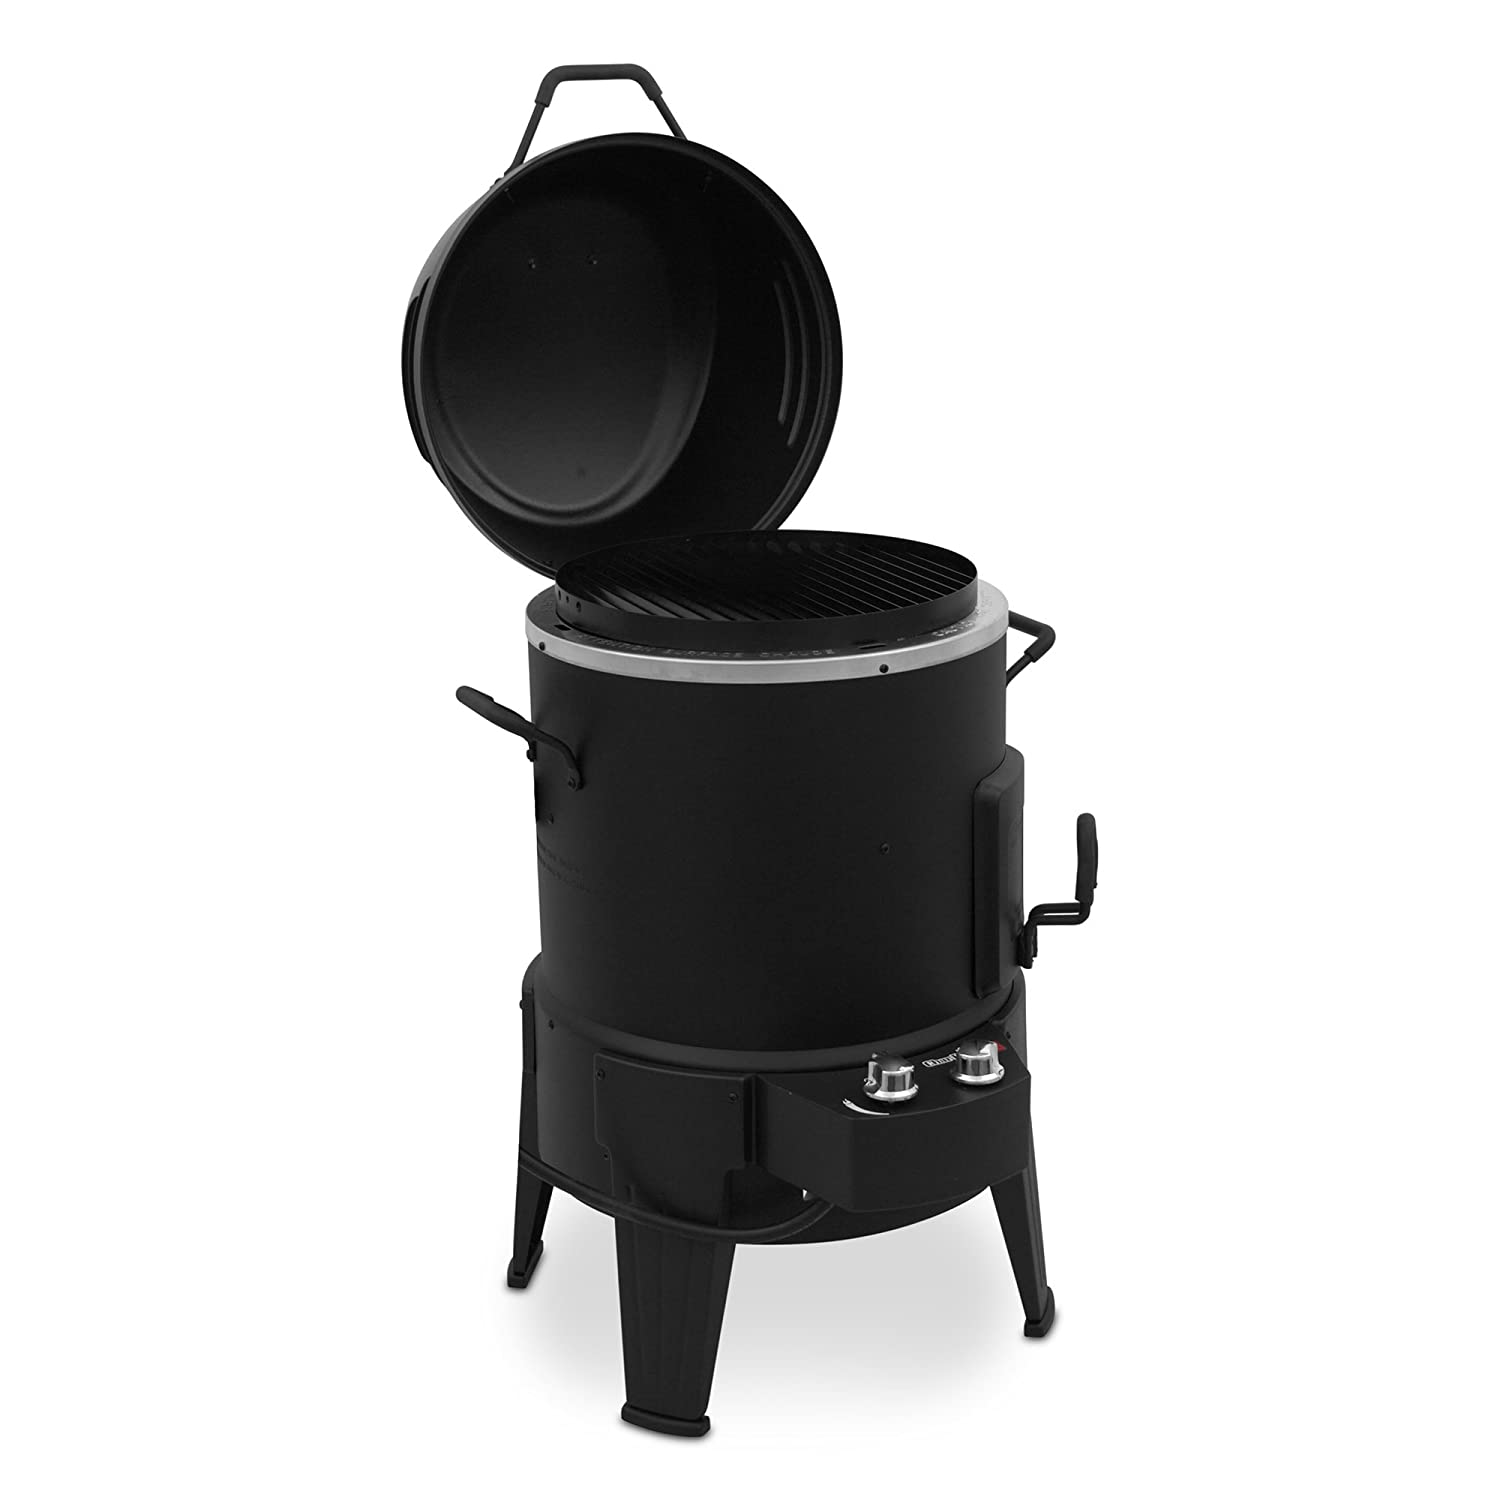 Amazon.com : Char-Broil The Big Easy TRU-Infrared Smoker Roaster & Grill : Electric Pressure Cookers : Garden & Outdoor